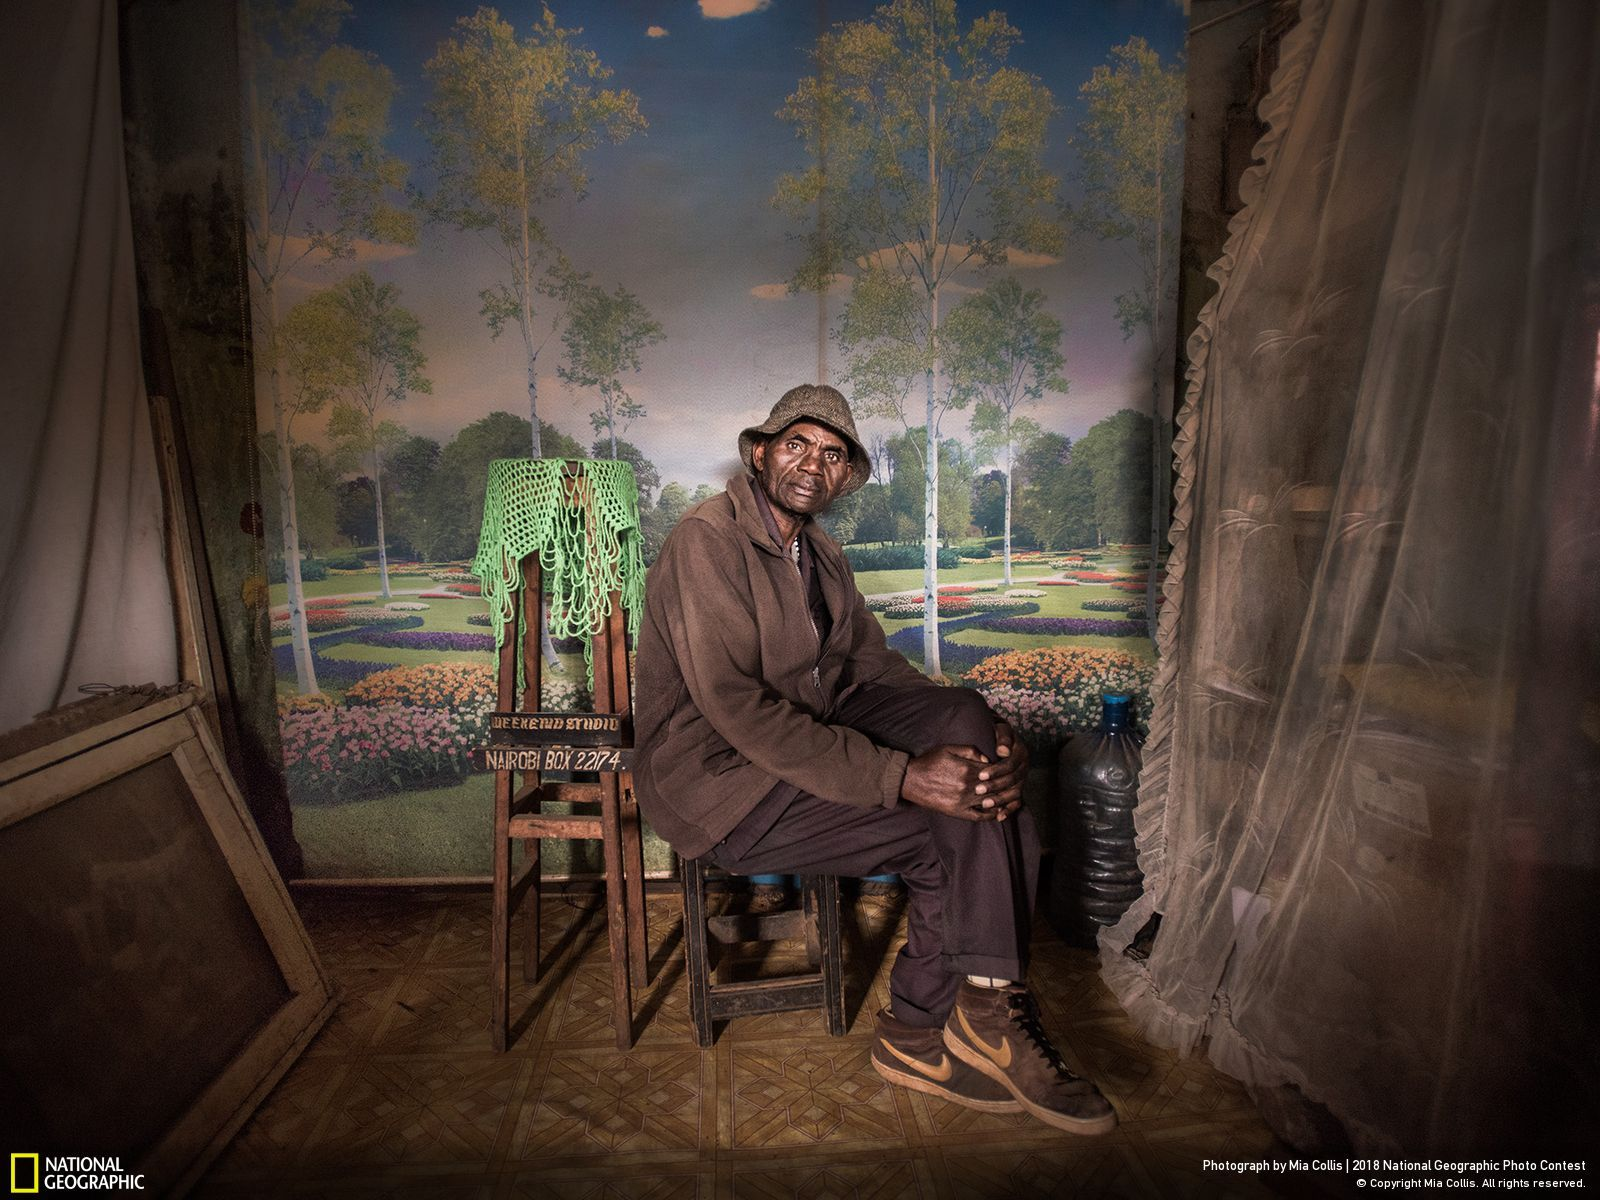 Premier Prix People National Geographic Photo Contest, Sunday Best at Weekend Studio par Mia Collis